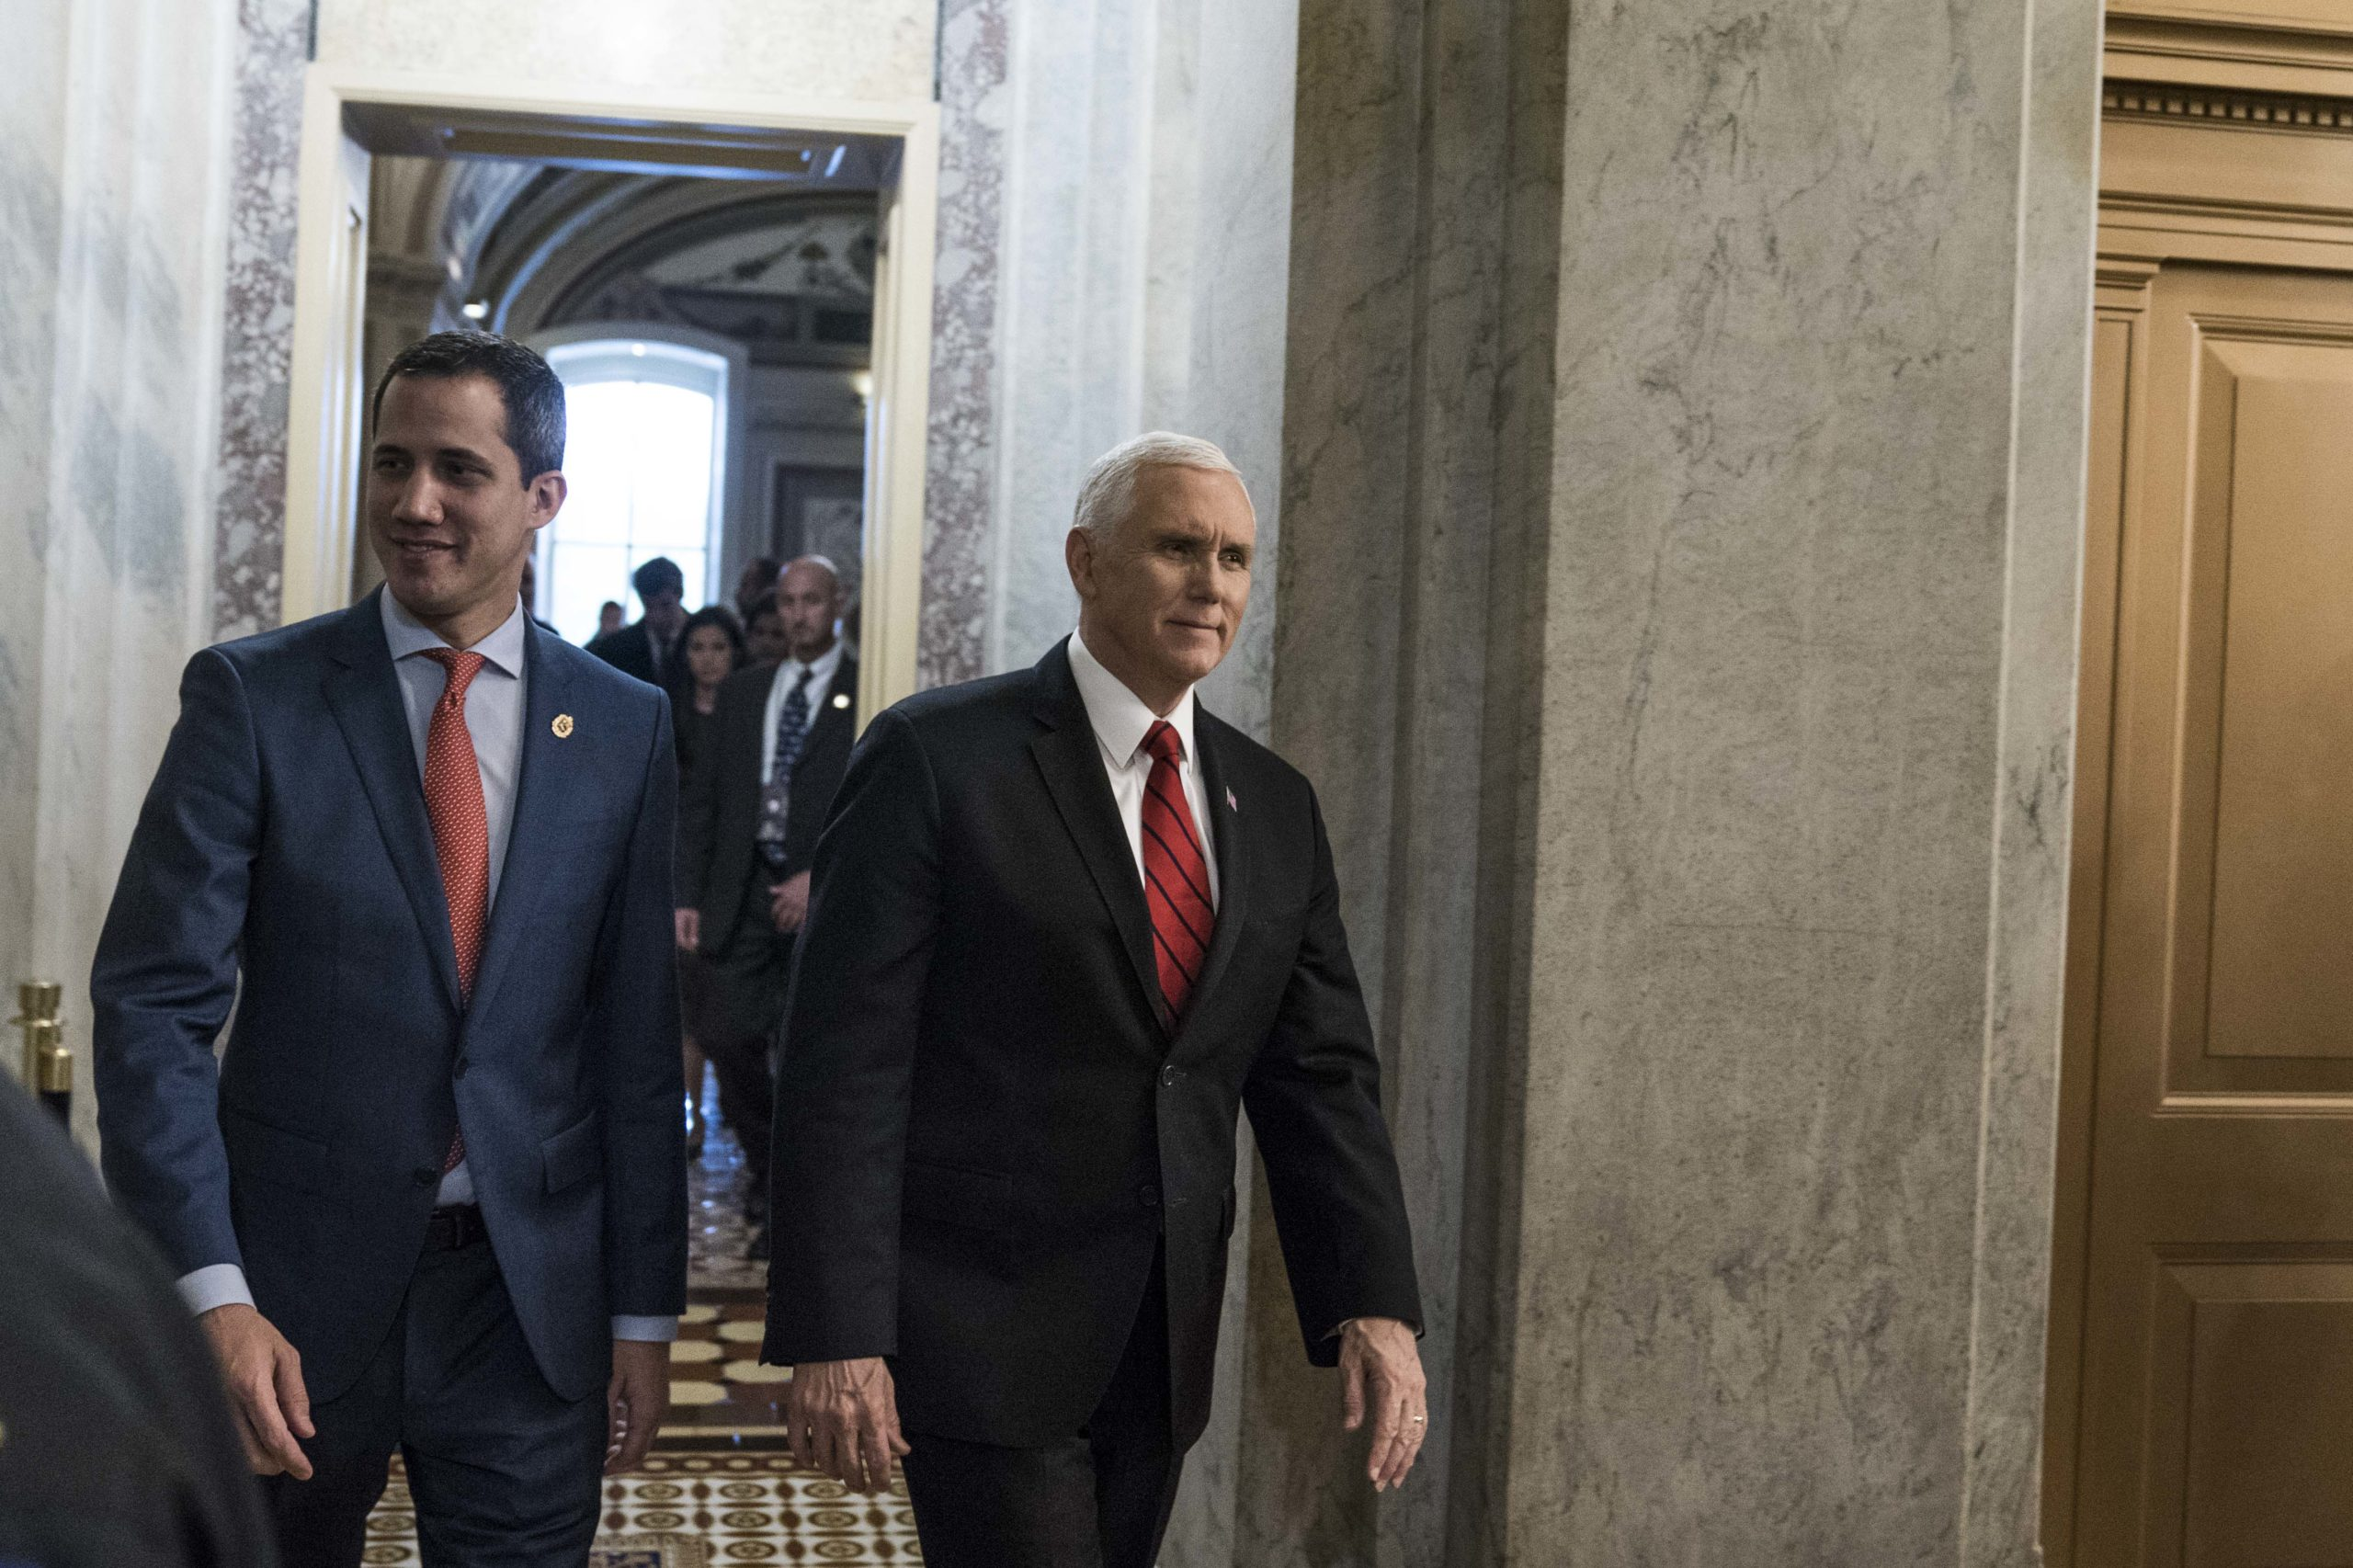 Vice President Mike Pence and Venezuelan opposition leader Juan Guaidó depart from the U.S. Capitol on Feb. 5, 2020. (Sarah Silbiger/Getty Images)